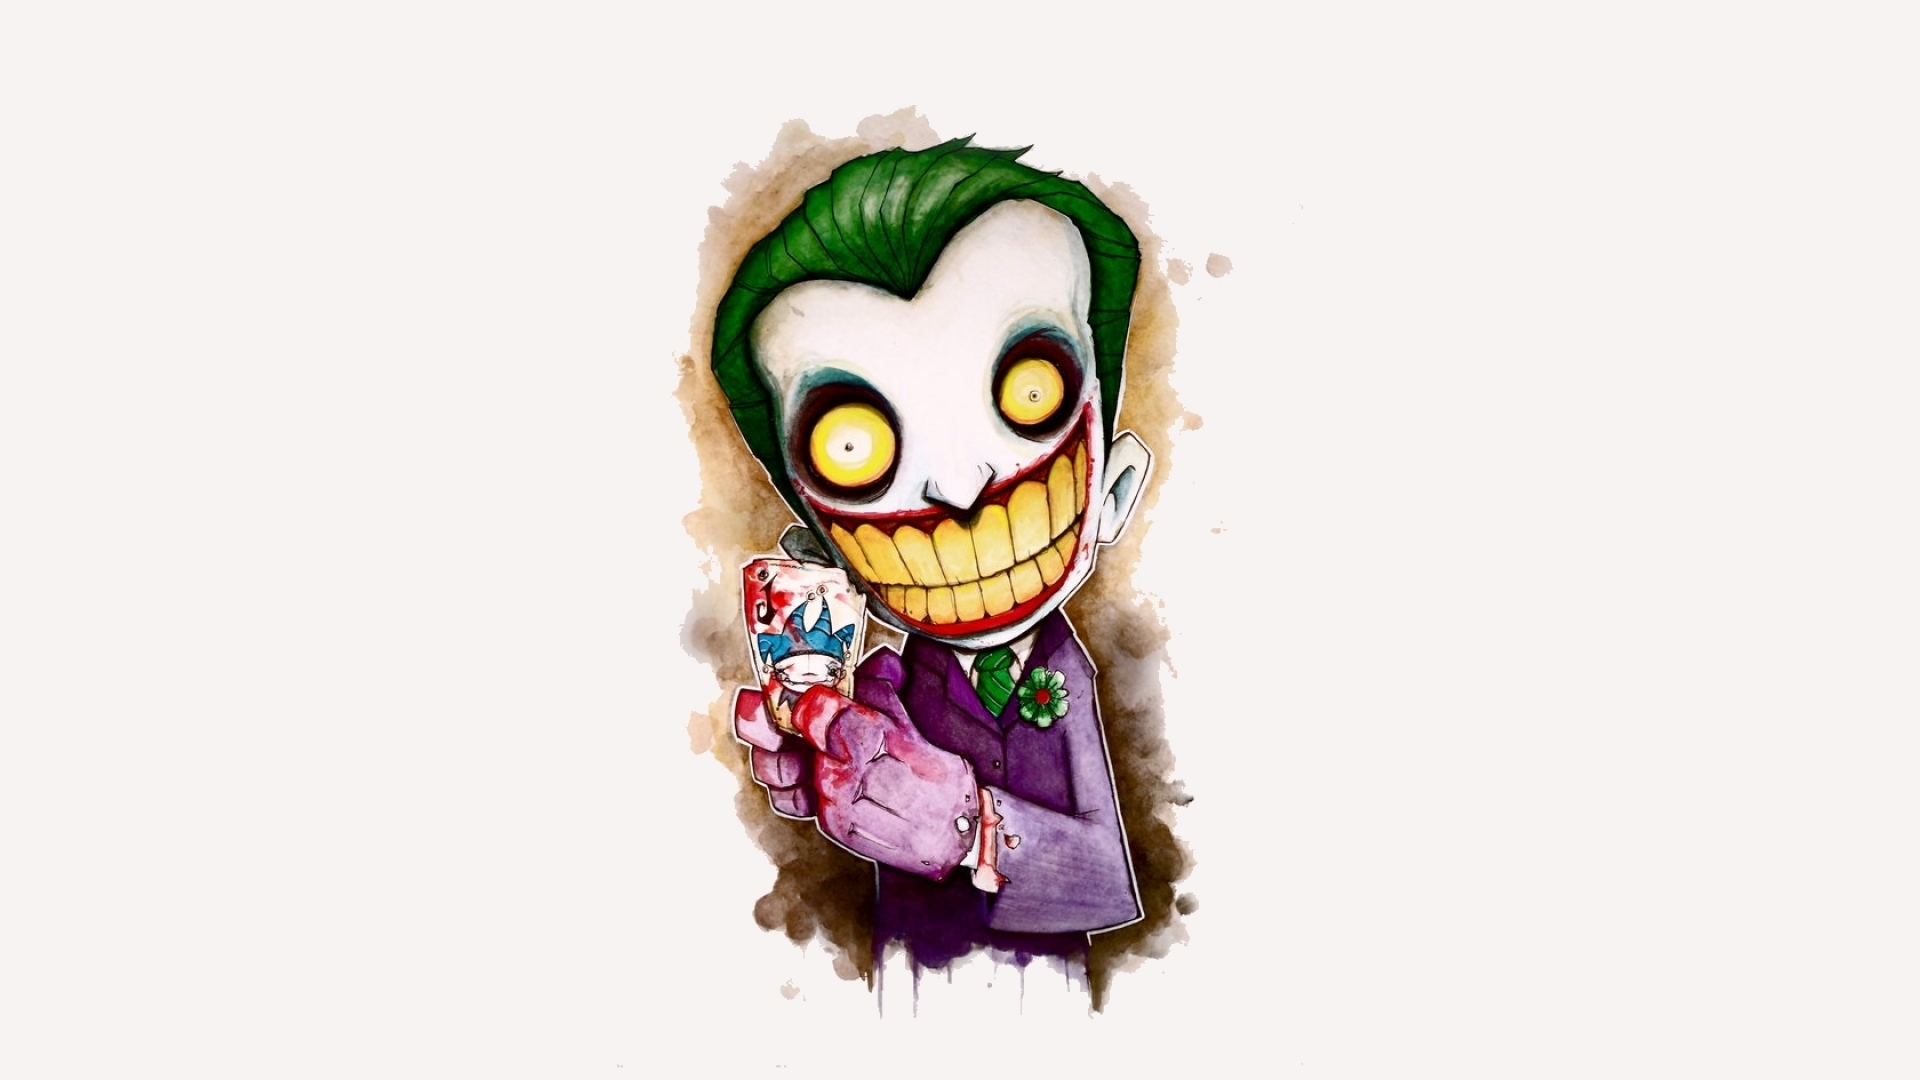 Joker Animated Wallpaper